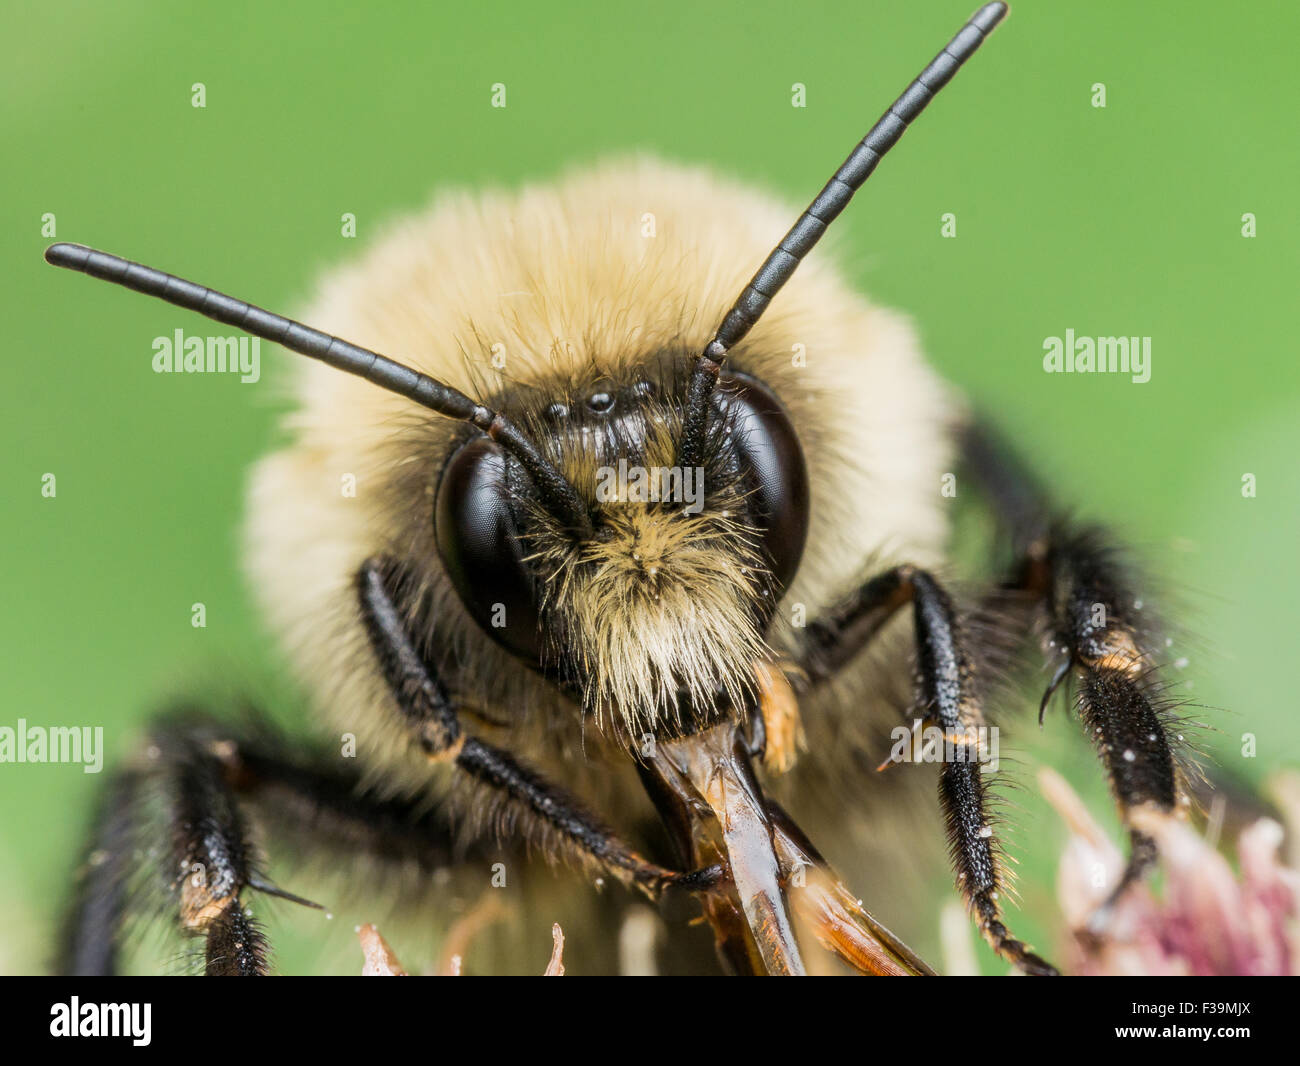 Yellow Bumble bee sticks out red mouth parts.  On Flower with green background. - Stock Image